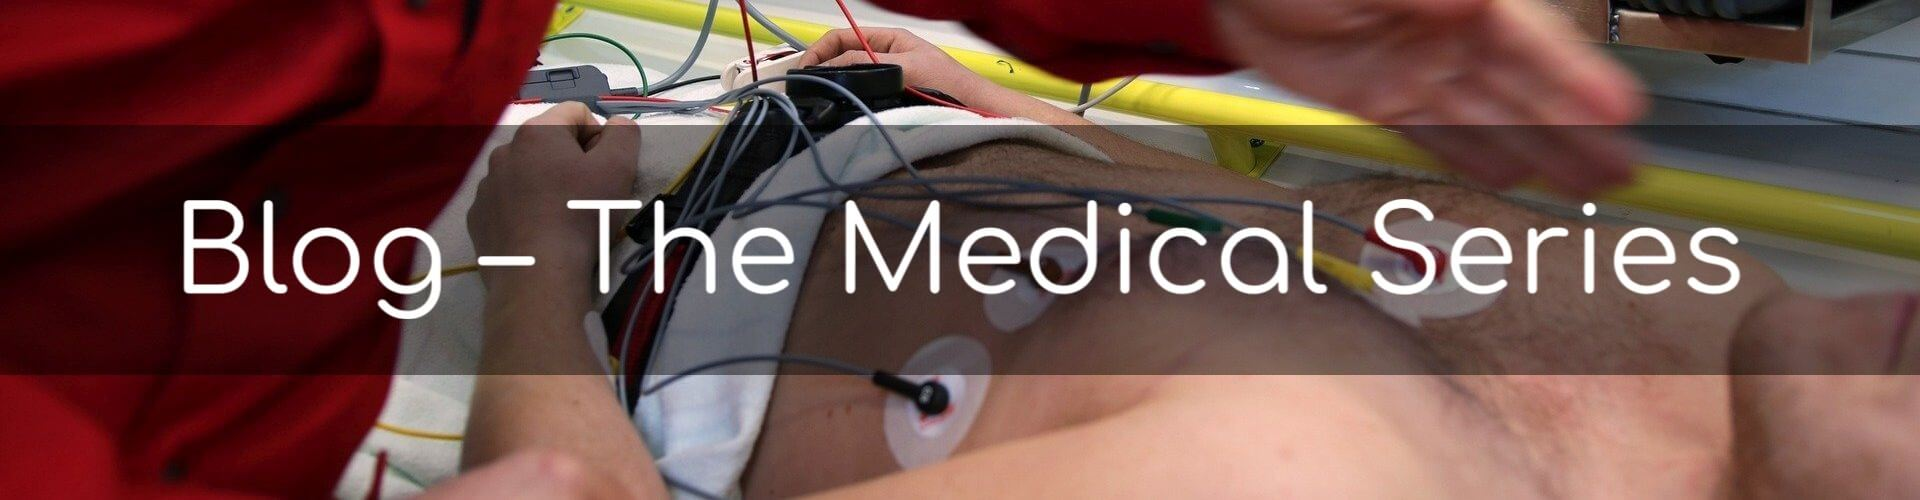 Blog - The medical series.